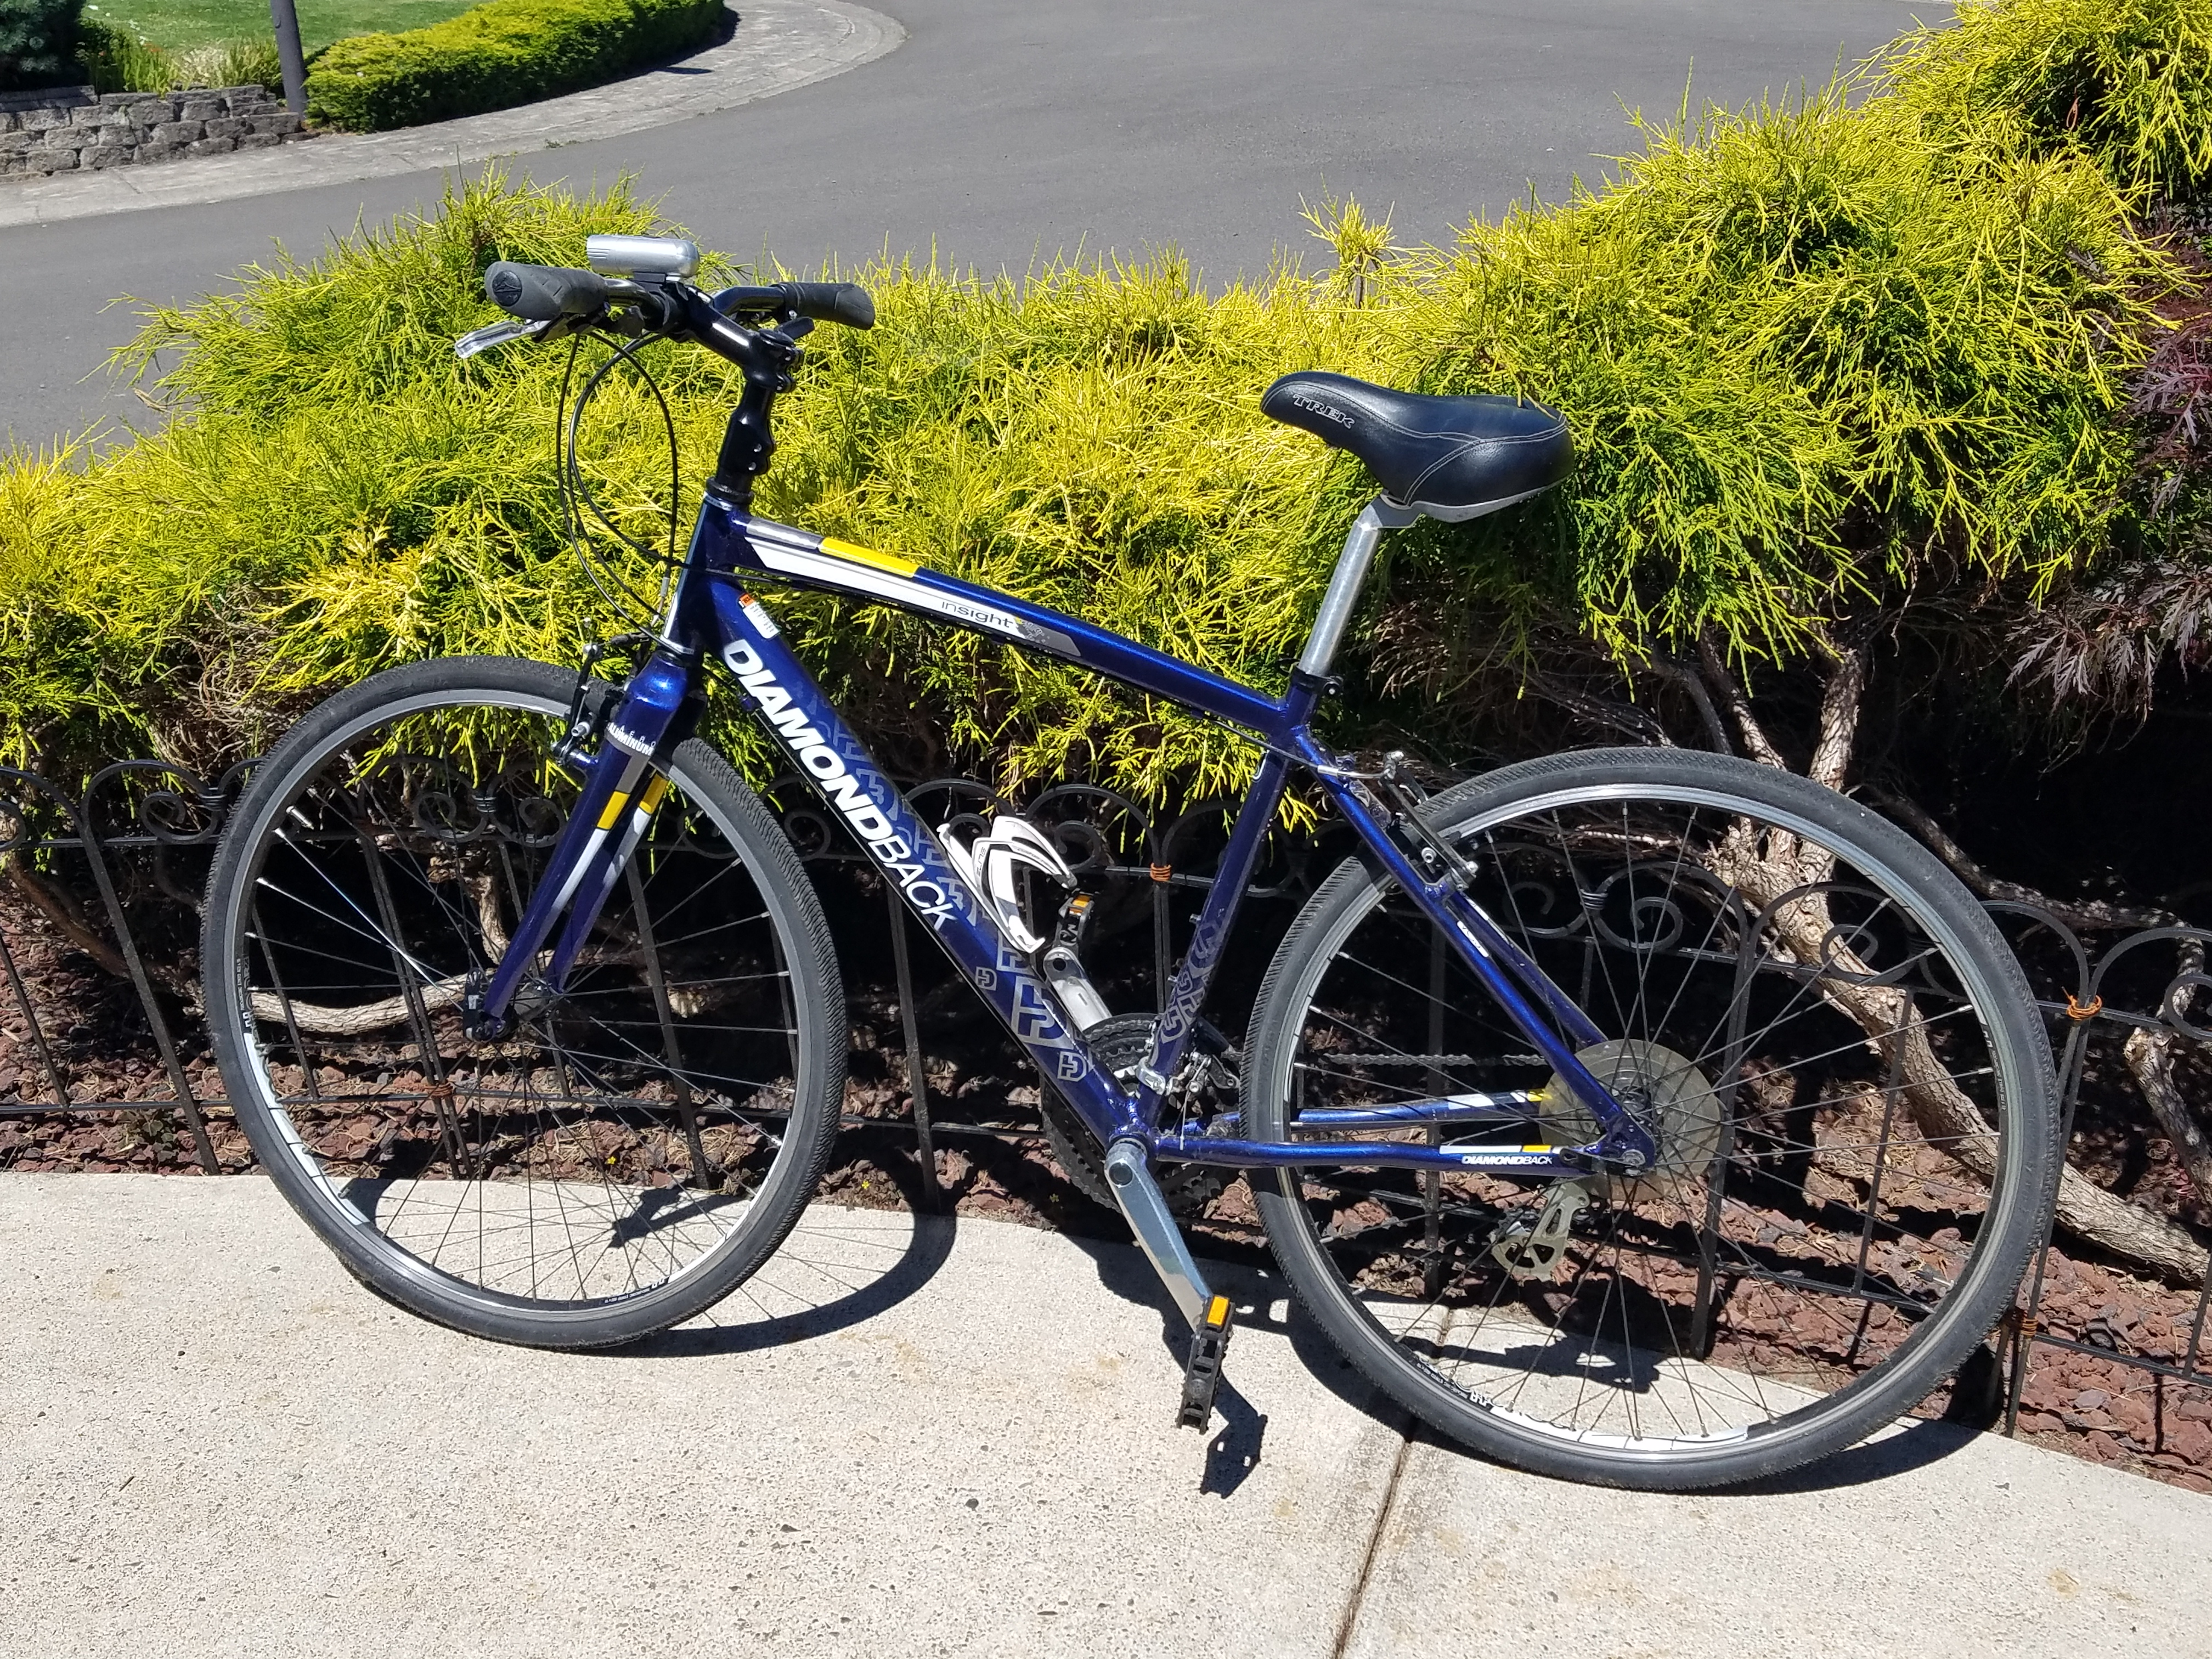 Diamond Head bike for rent (bike rack comes with RV at no additional cost)